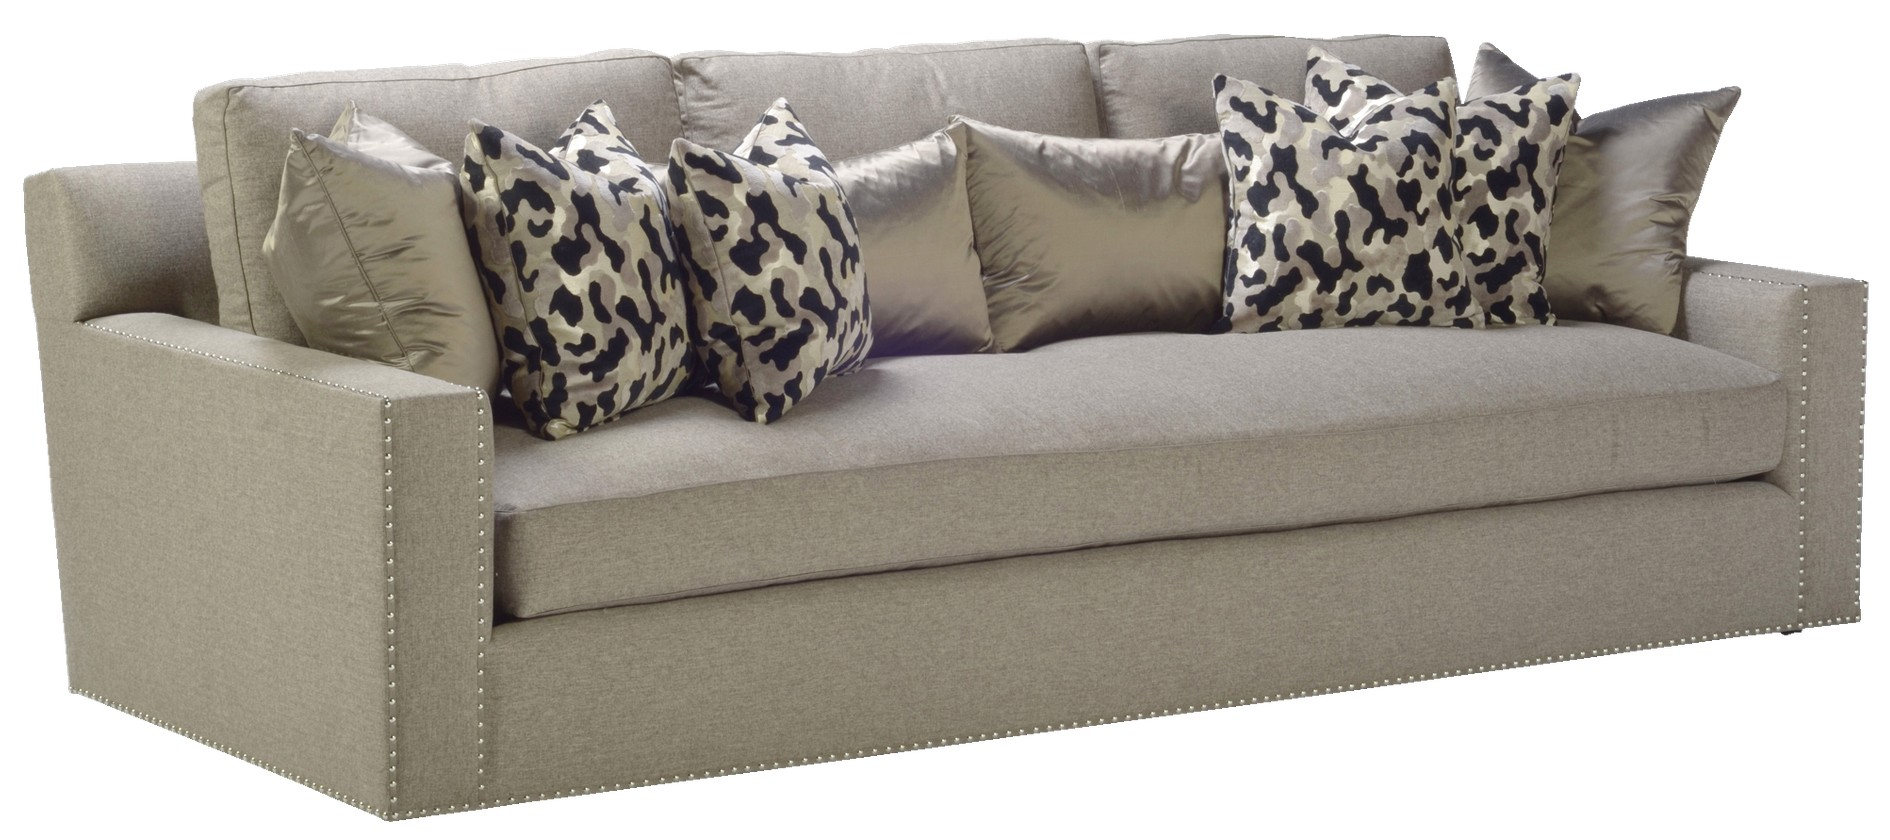 Nail head trim sofa gray fabric sofa with nailhead trim for Grey sectional sofa with nailhead trim